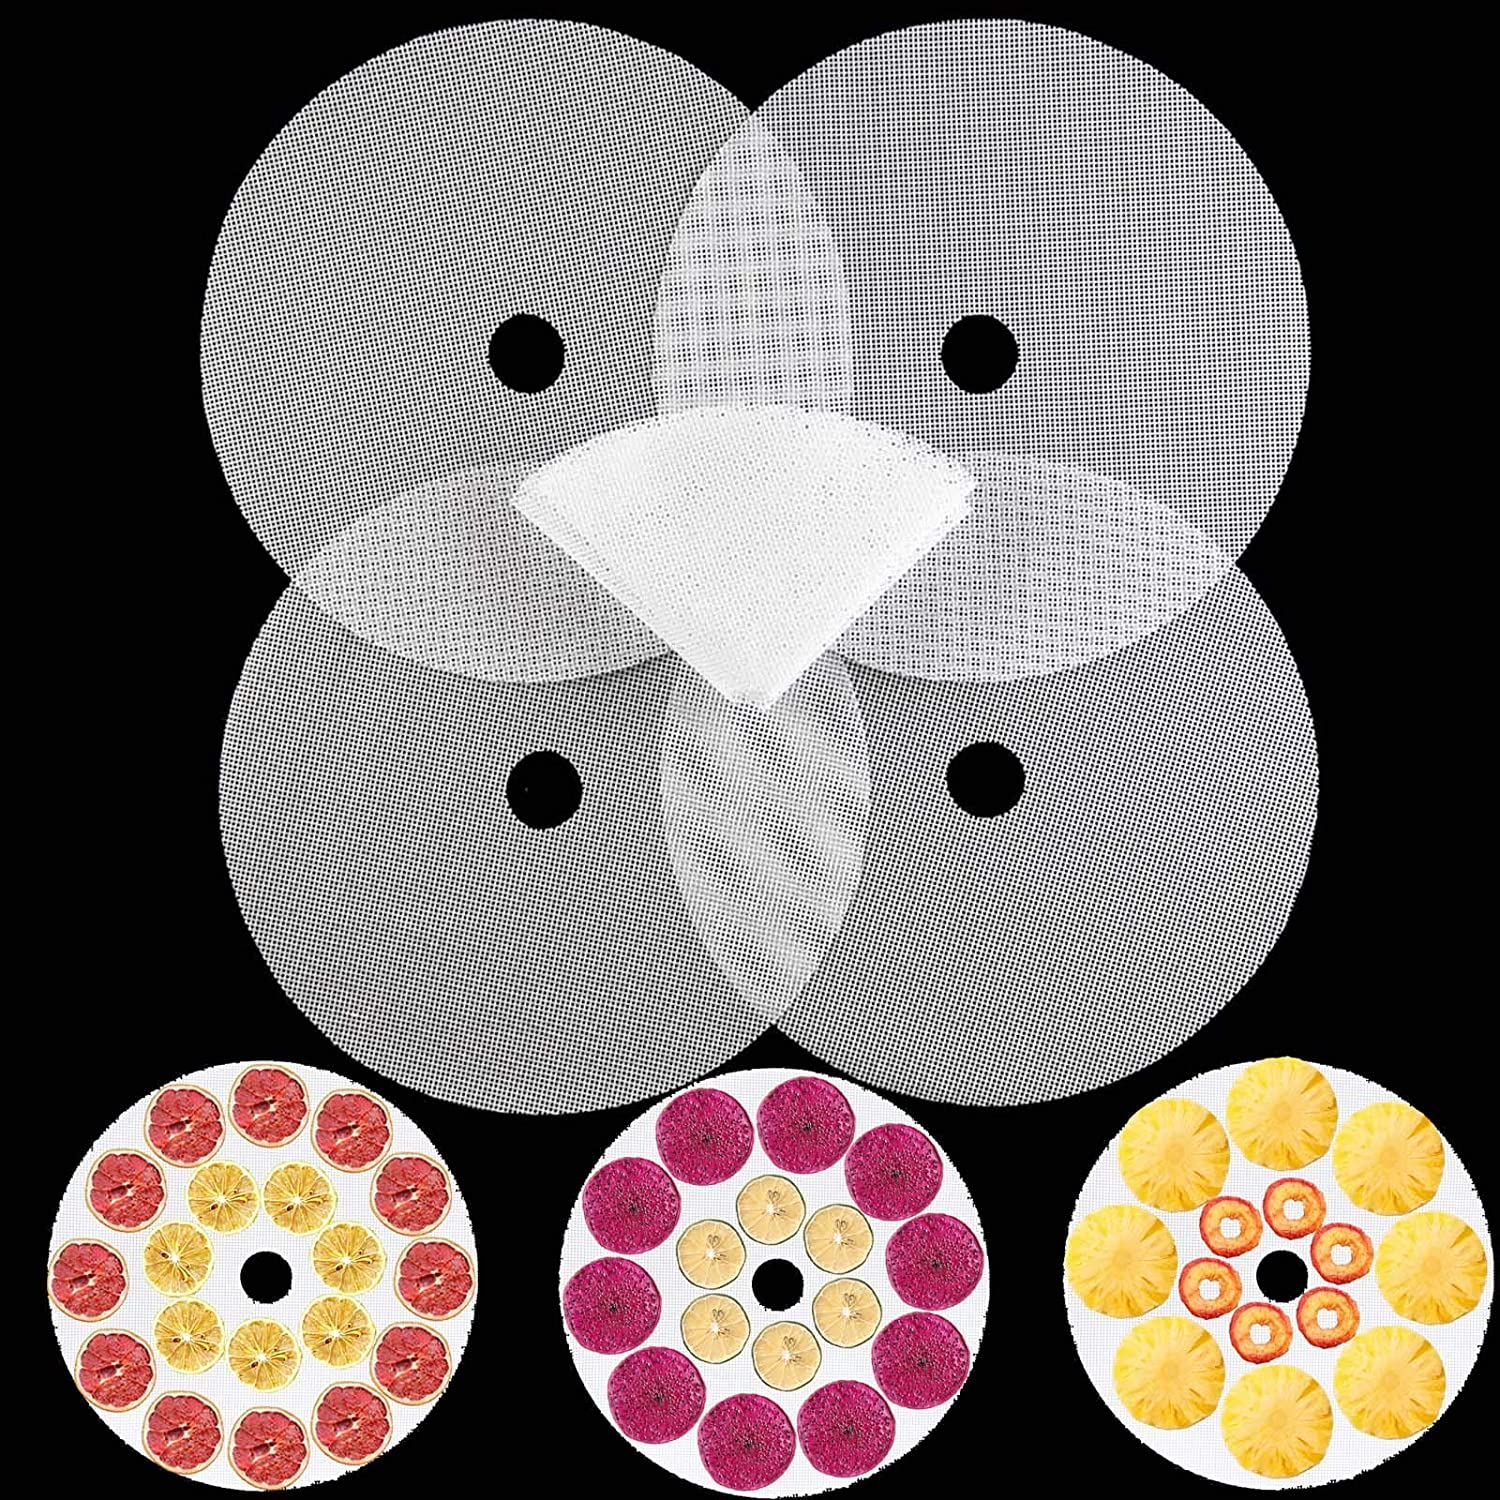 5 PCS Round Silicone Dehydrator Sheets, Premium Non Stick Food Fruit Dehydrator Mats, Reusable Steamer Mesh Silicone Baking Mats for Fruit Dryer Mesh, Top Dehydrator Accessories